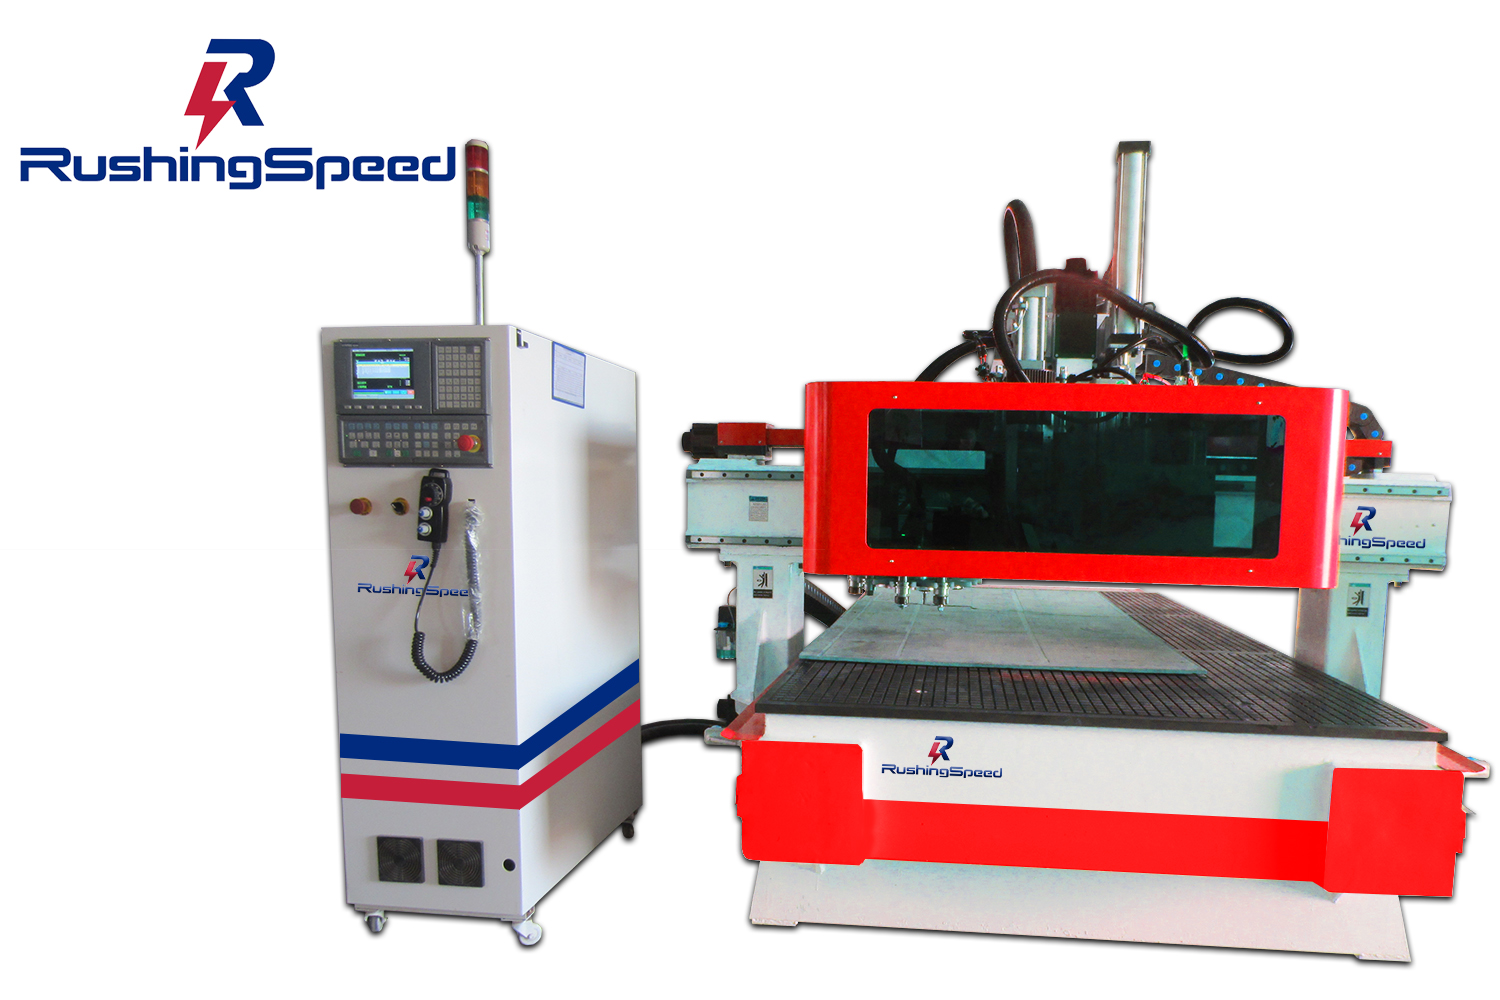 CNC Cutting Router Machine RSP-3000A